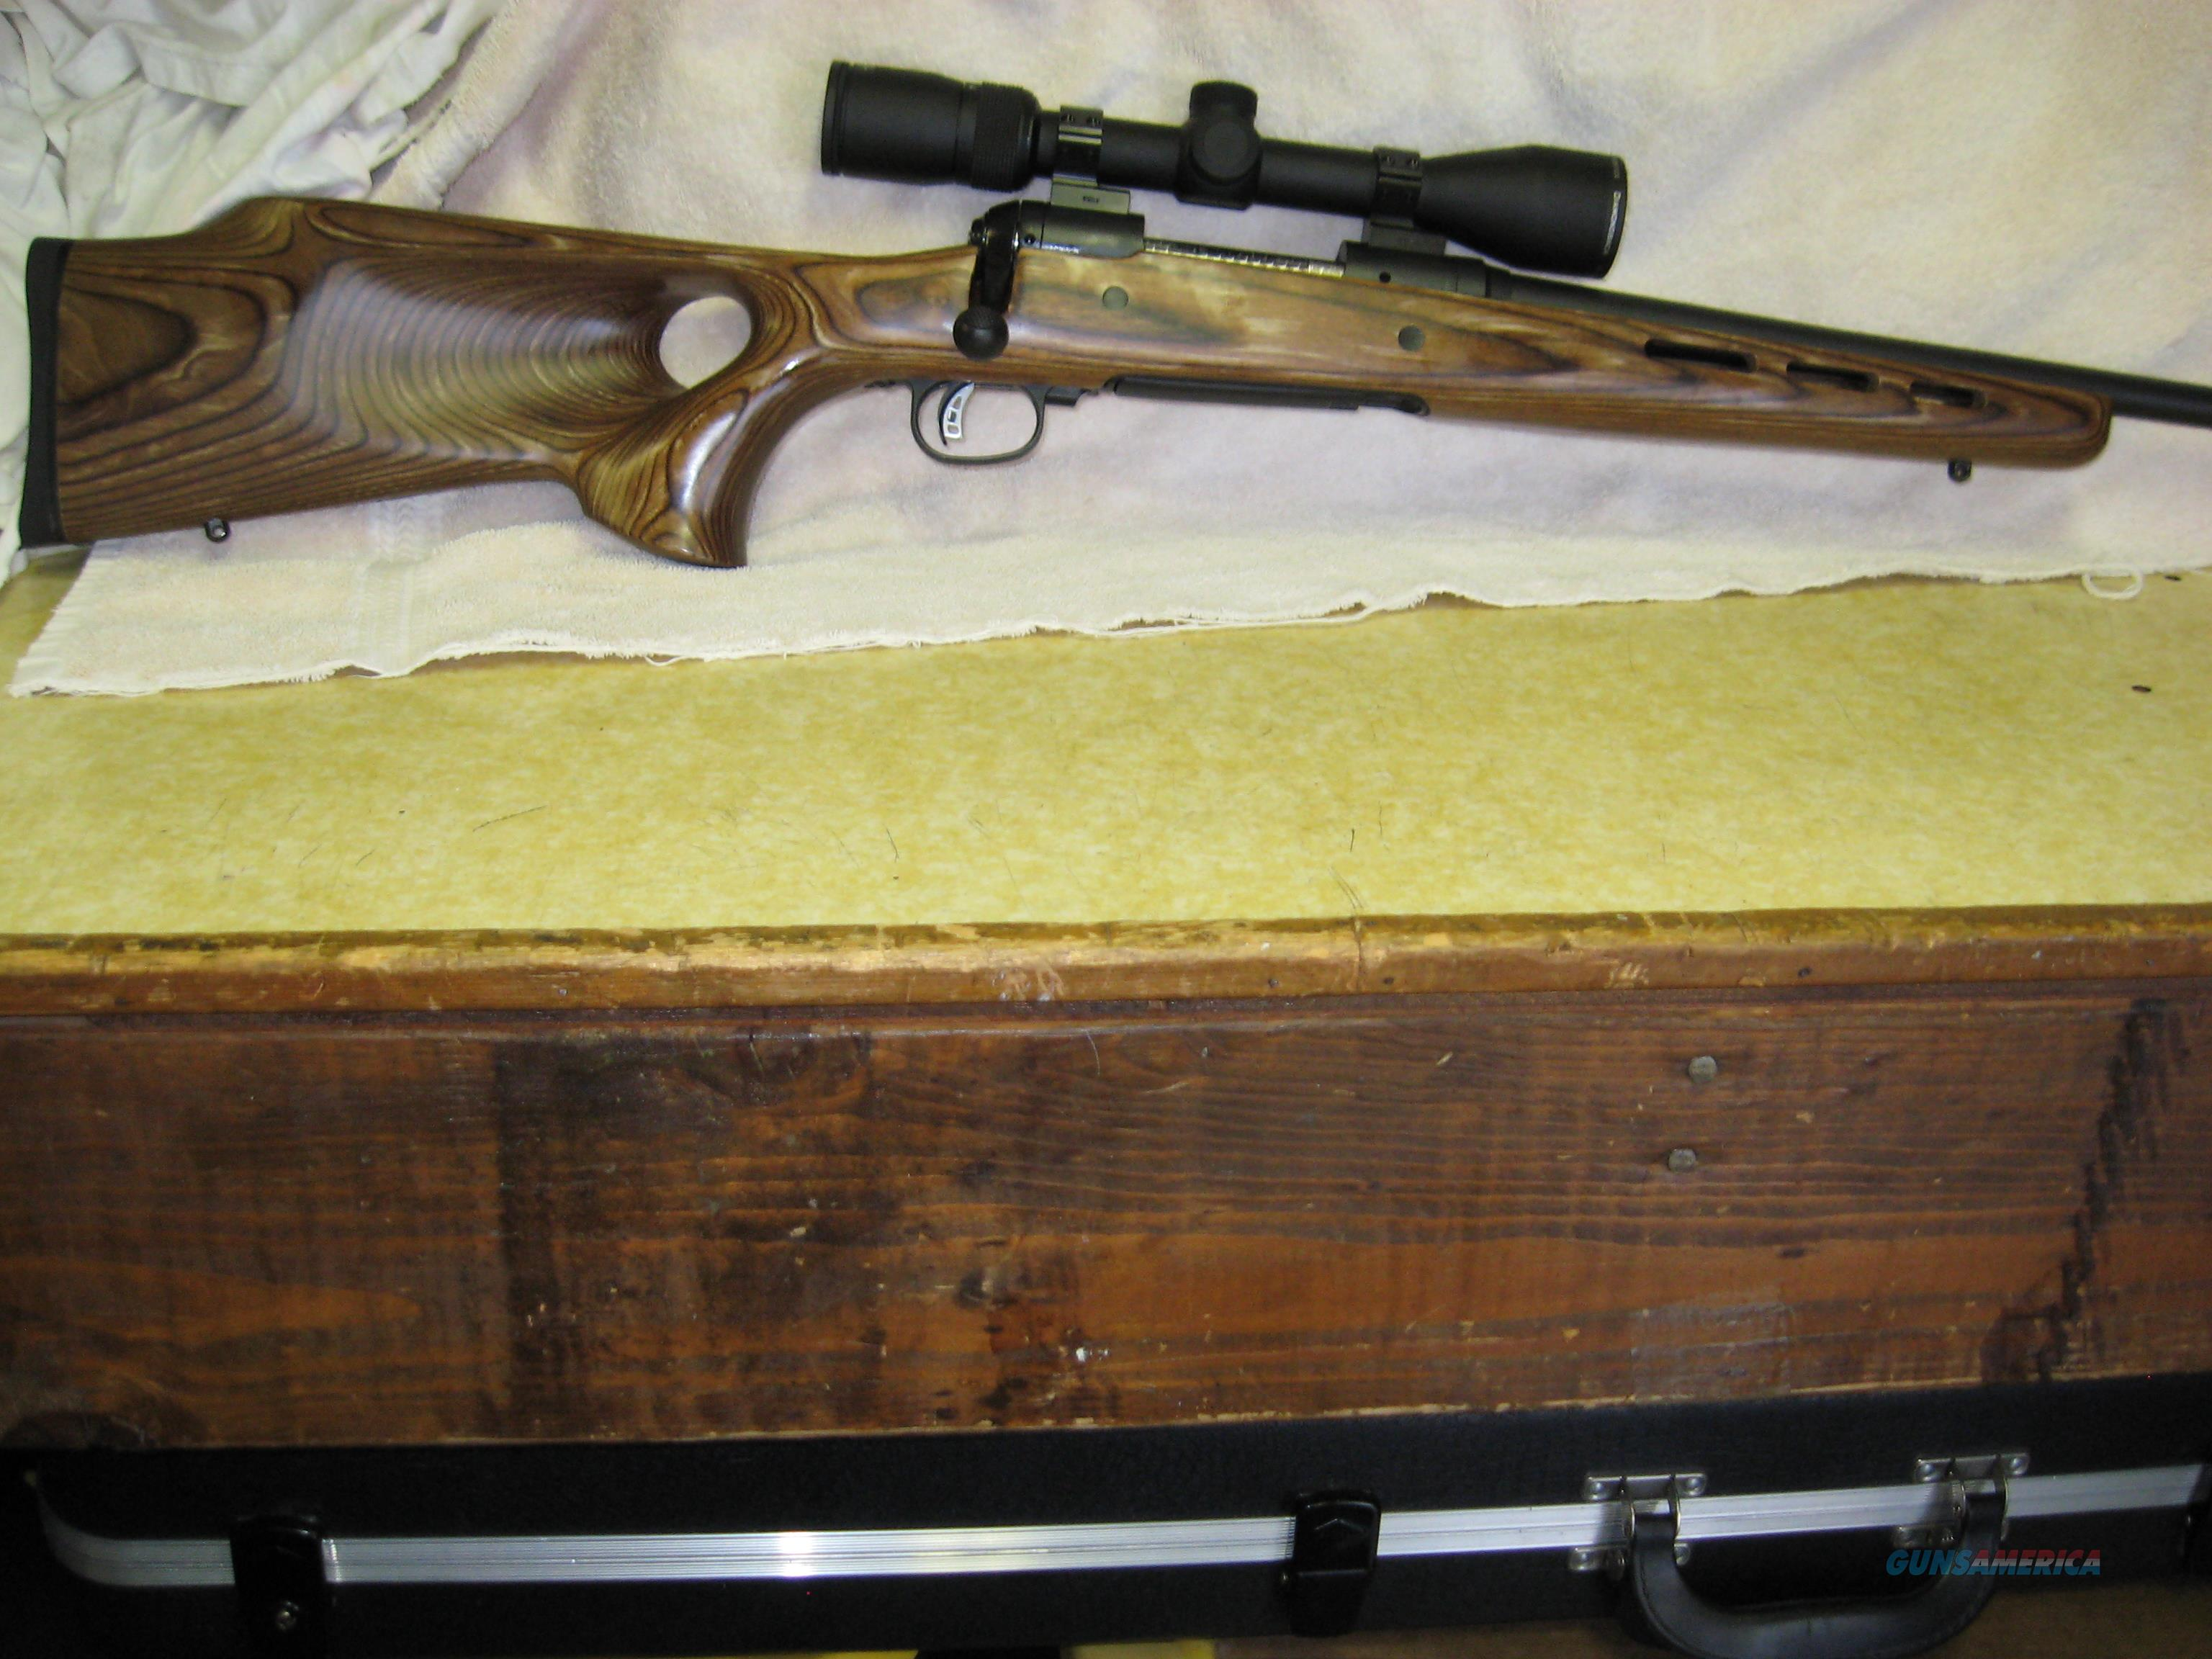 Savage Model 11 with Accutrigger Cal. 223 Rem $420  Guns > Rifles > Savage Rifles > Accutrigger Models > Sporting